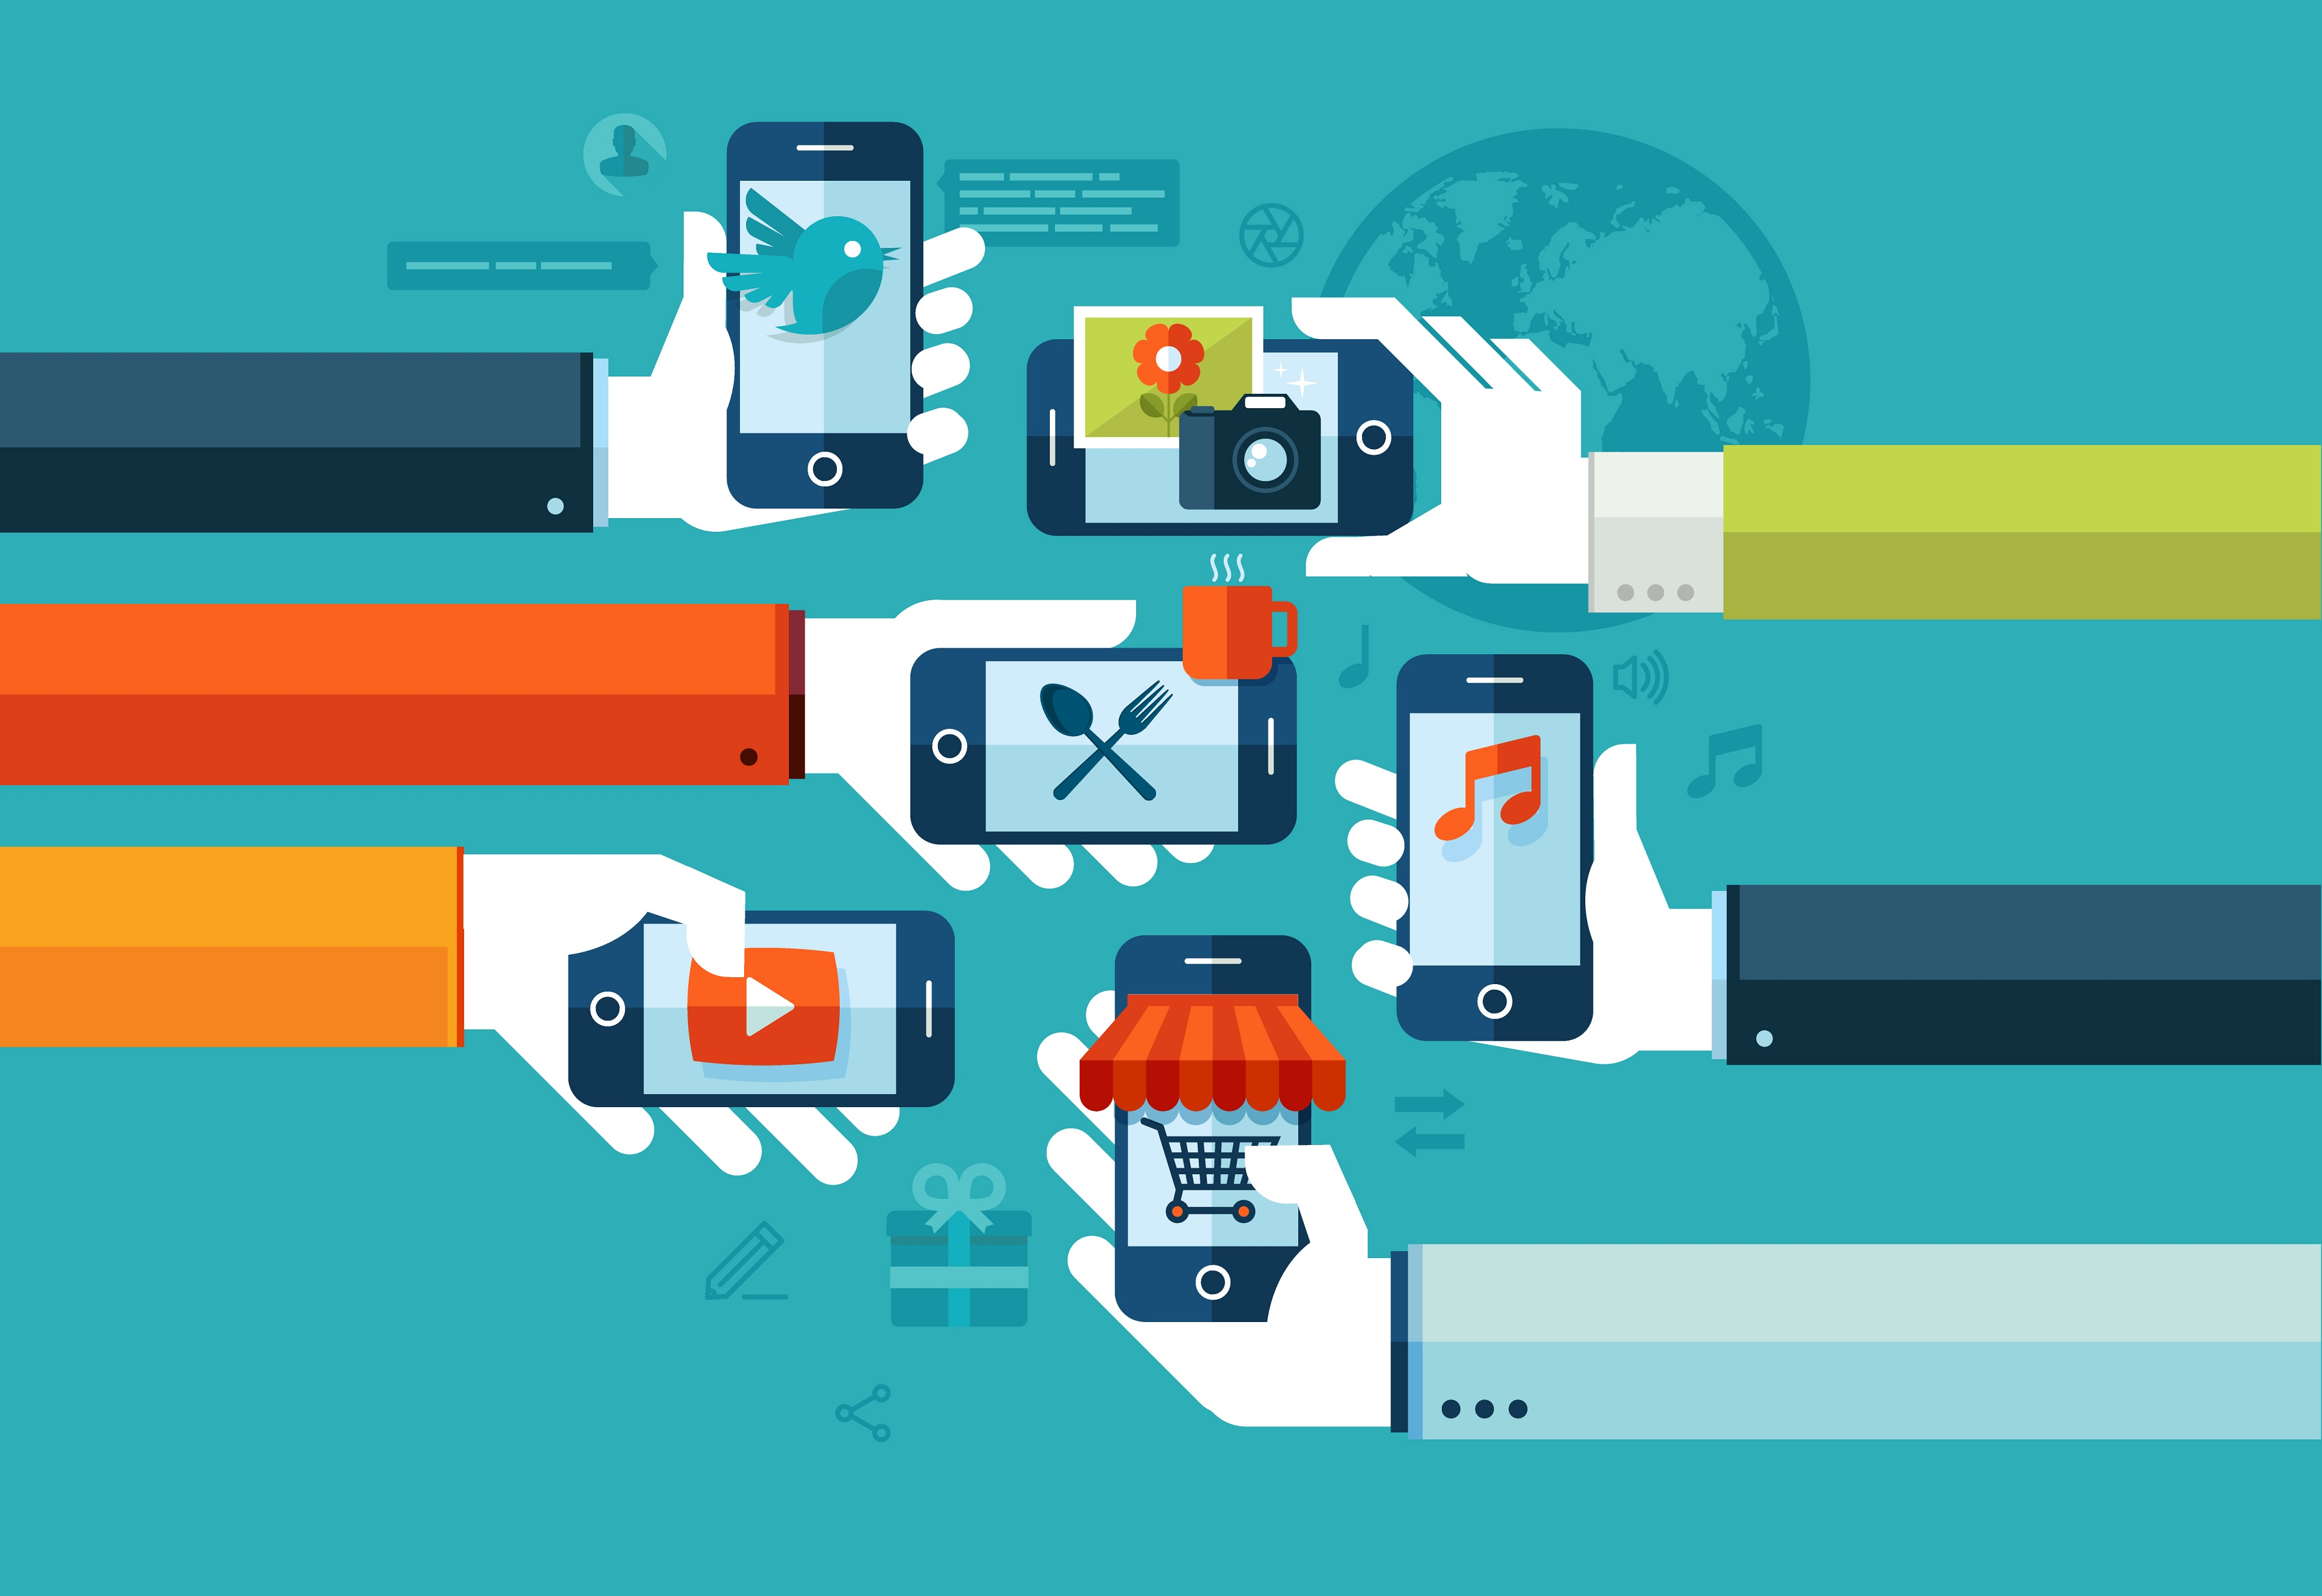 Mobile first que es